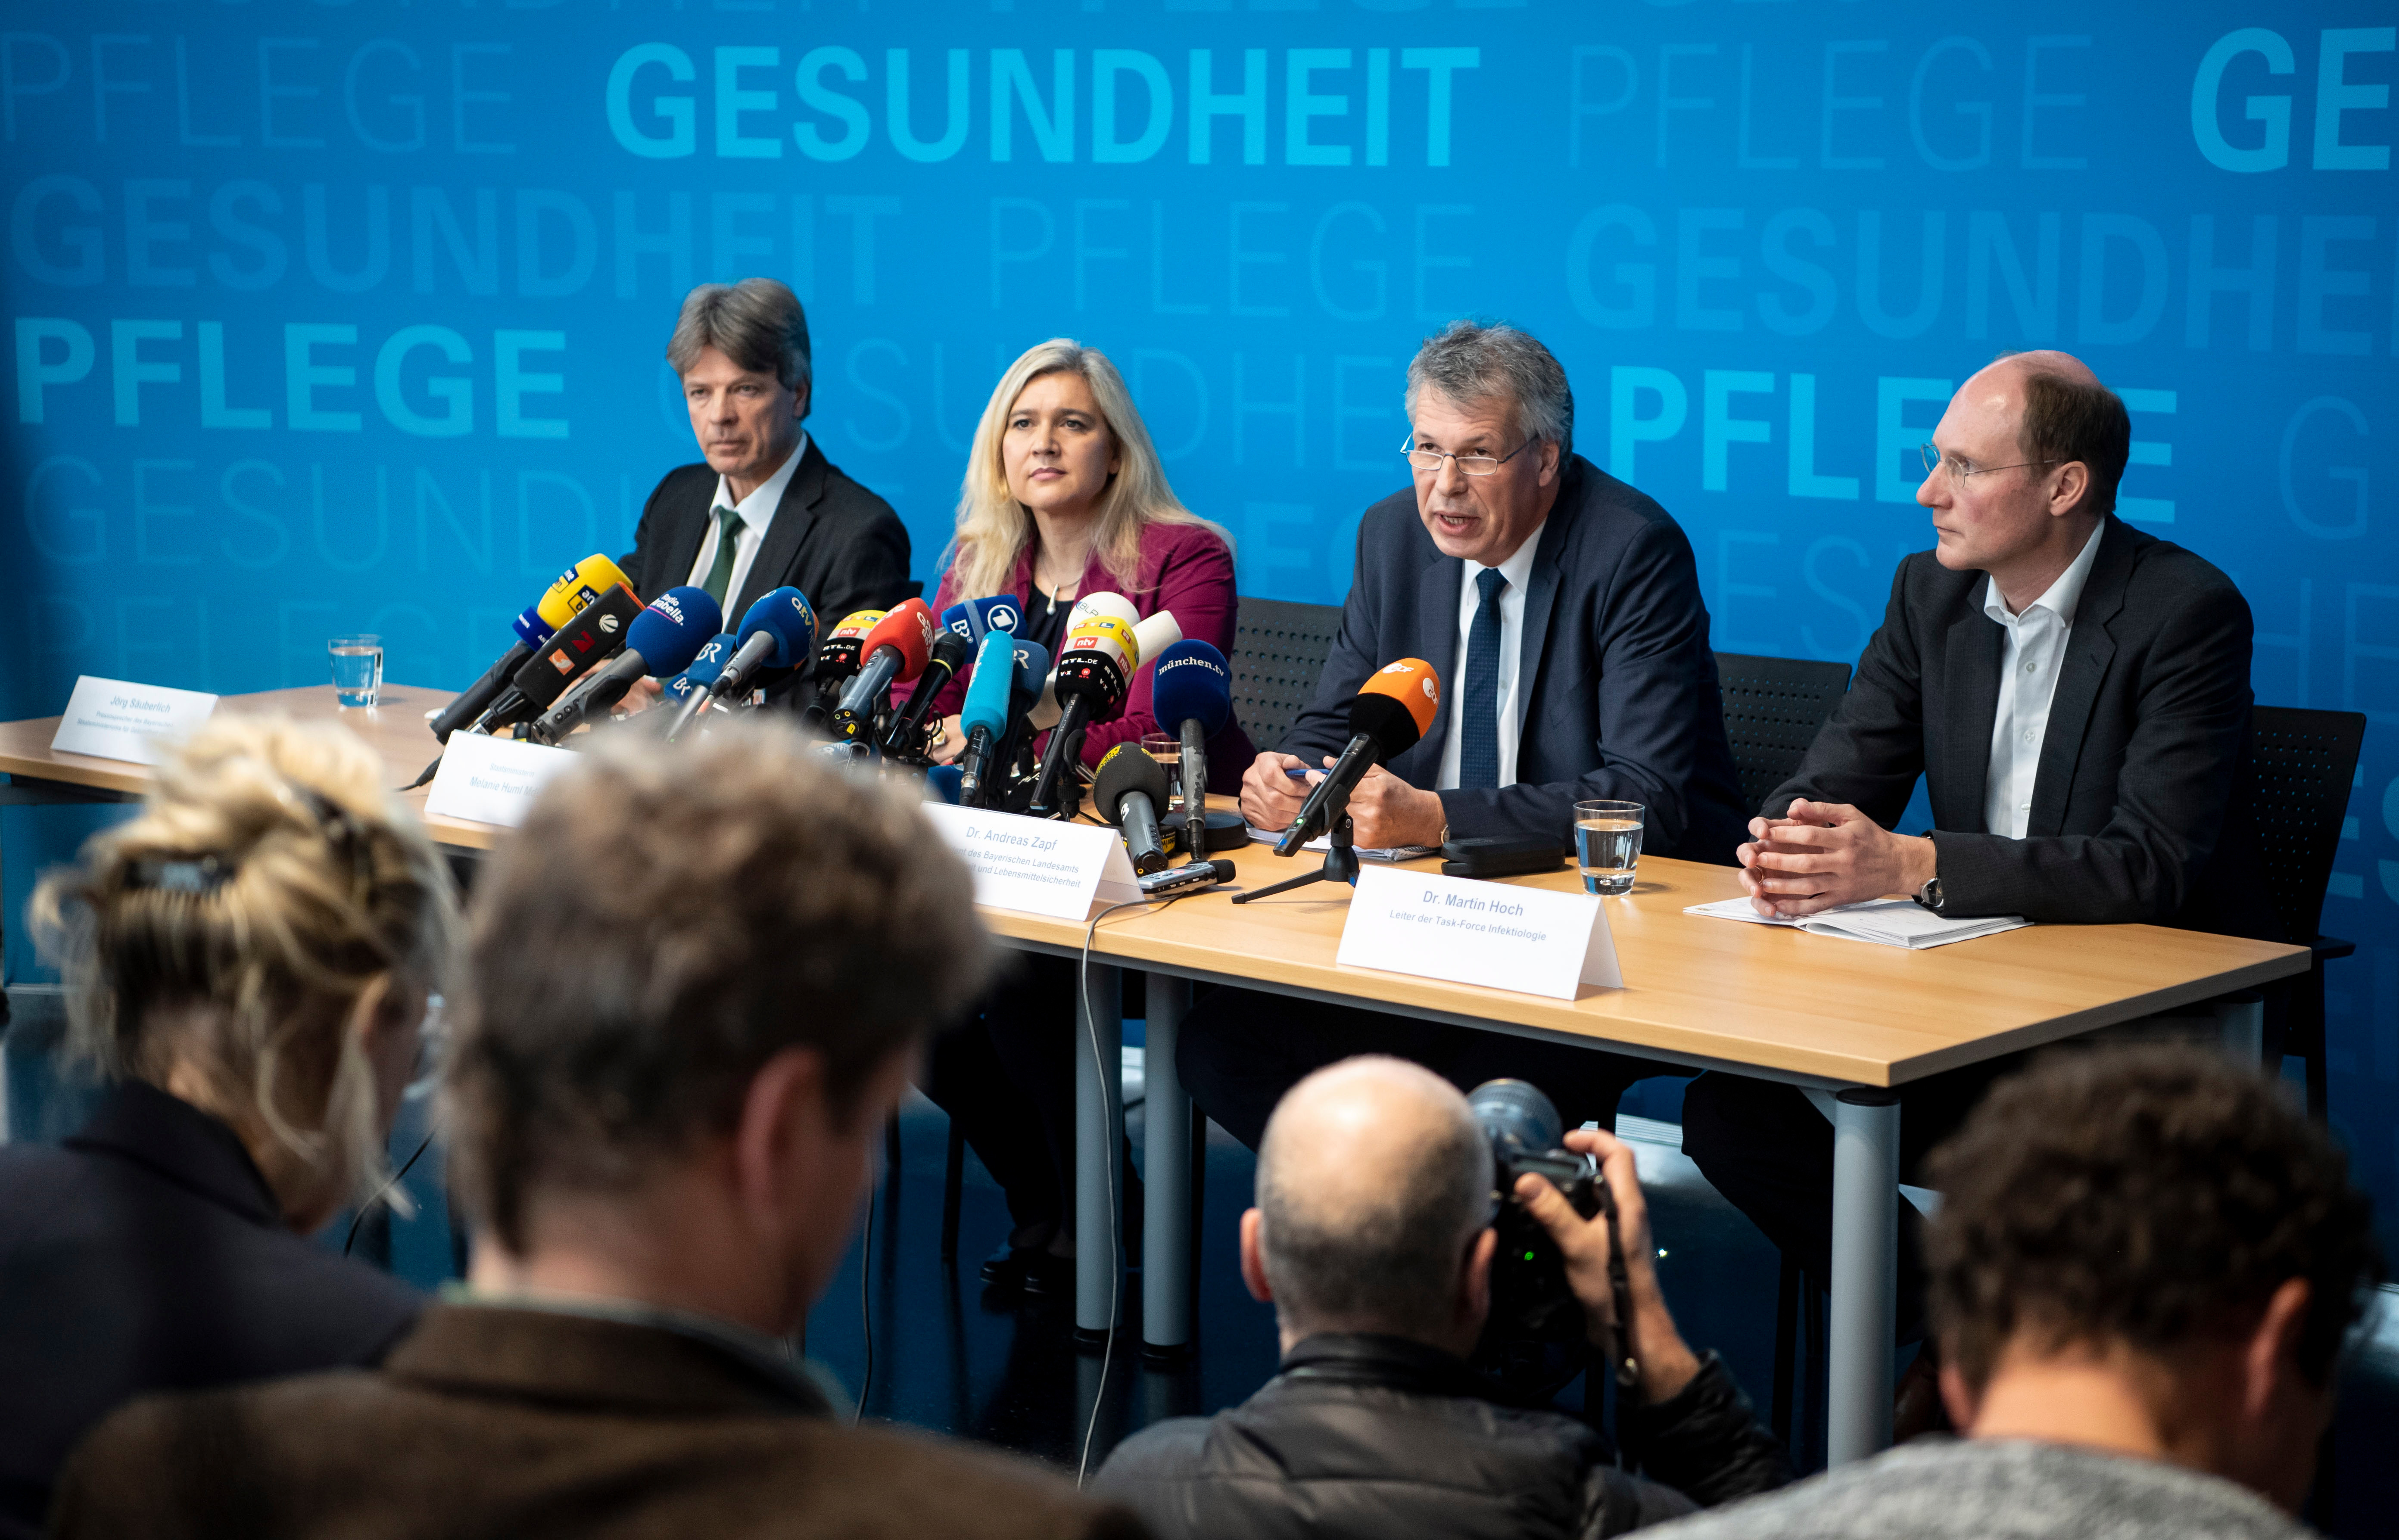 President of the Bavarian state office for health and food safety, Andreas Zapf (third left), speaks next to Bavarian Health Minister Melanie Huml (second left), during a news conference in Munich